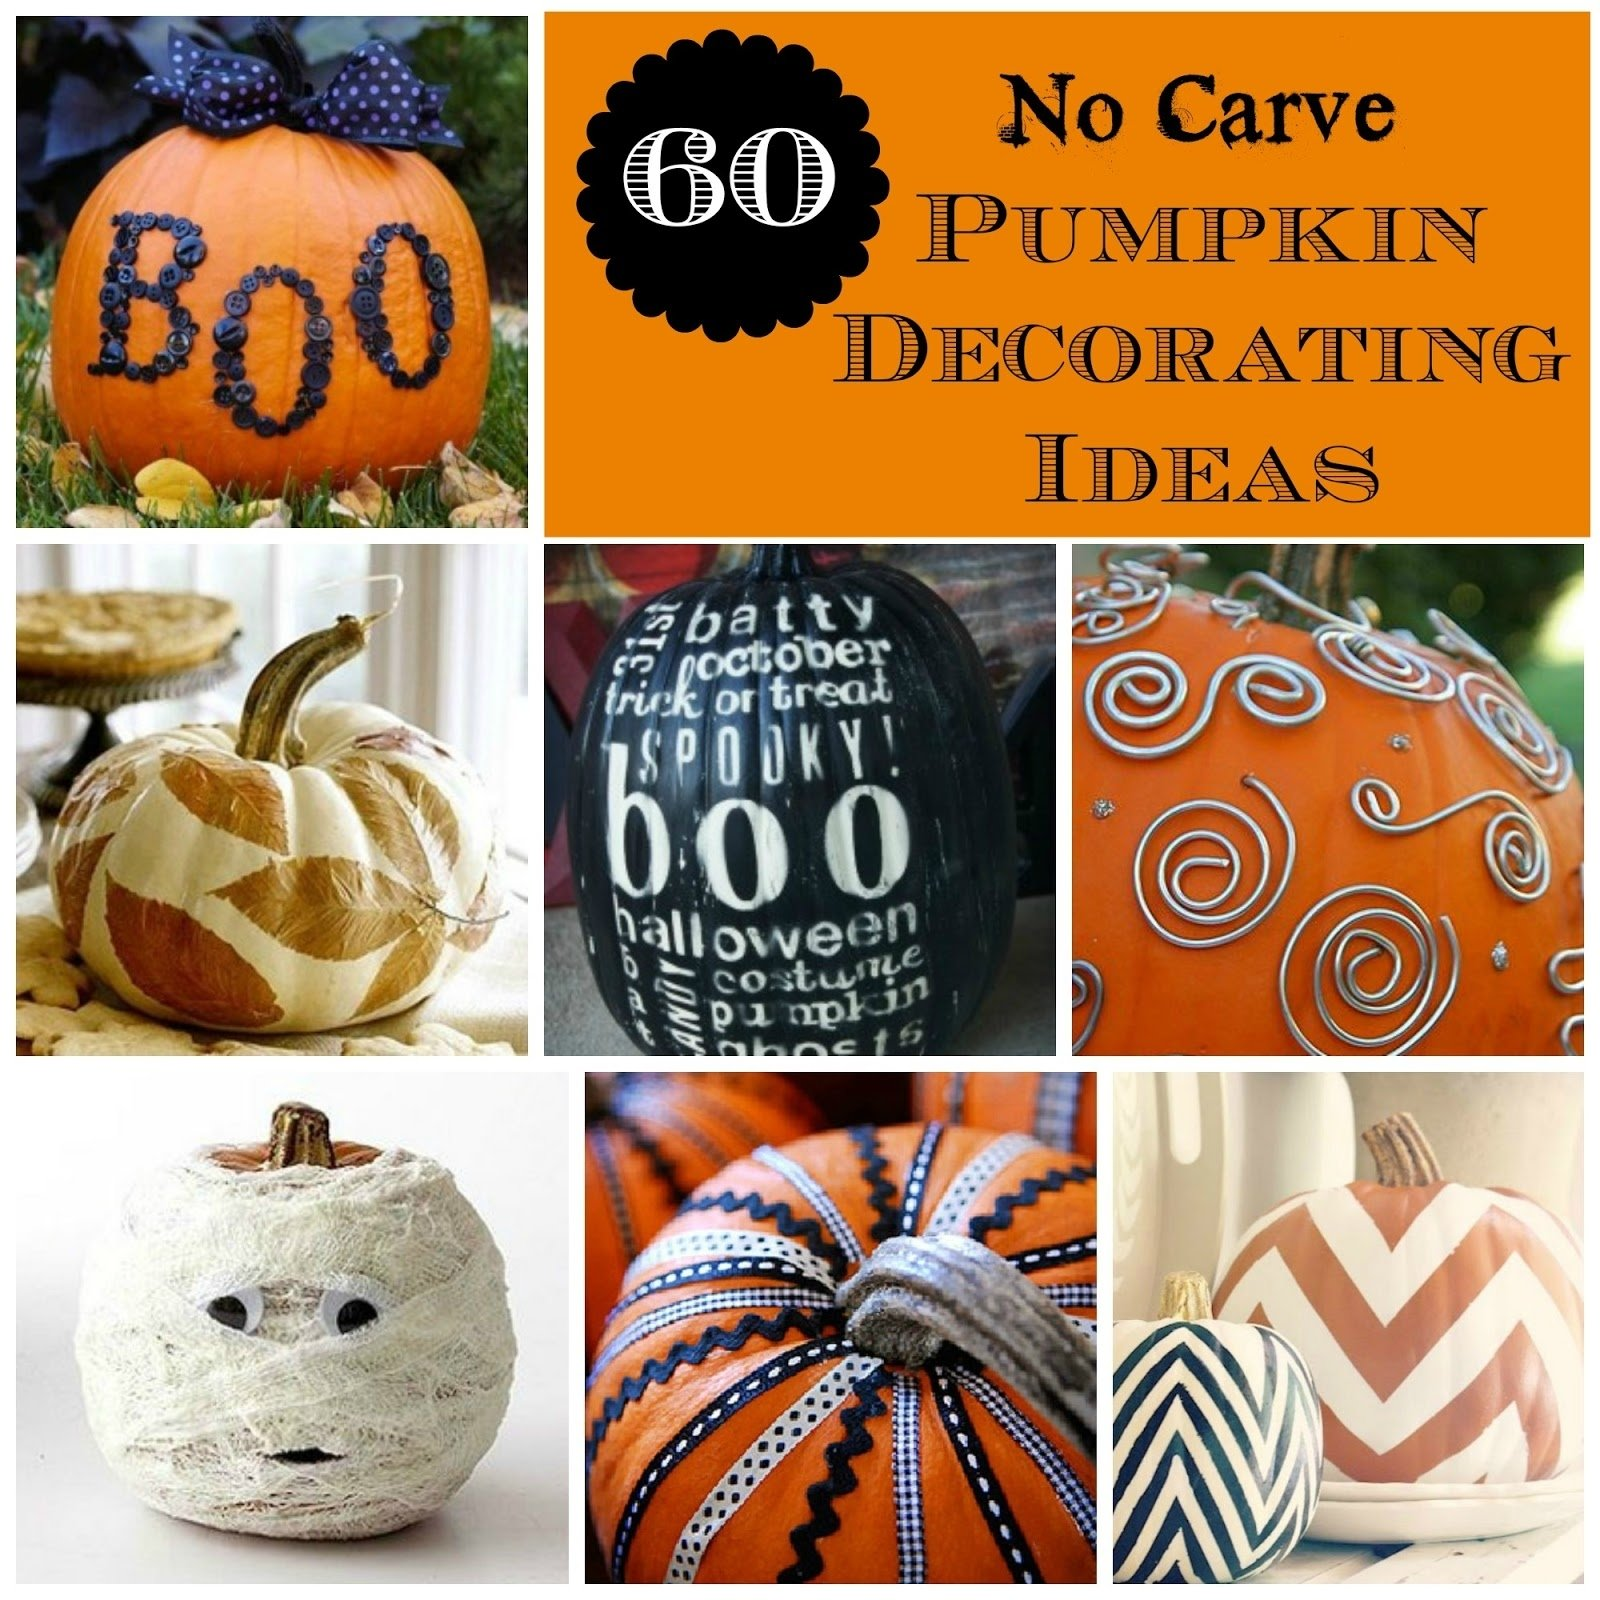 10 Most Recommended Non Carving Pumpkin Decorating Ideas all things katie marie 60 no carve pumpkin decorating ideas 2020